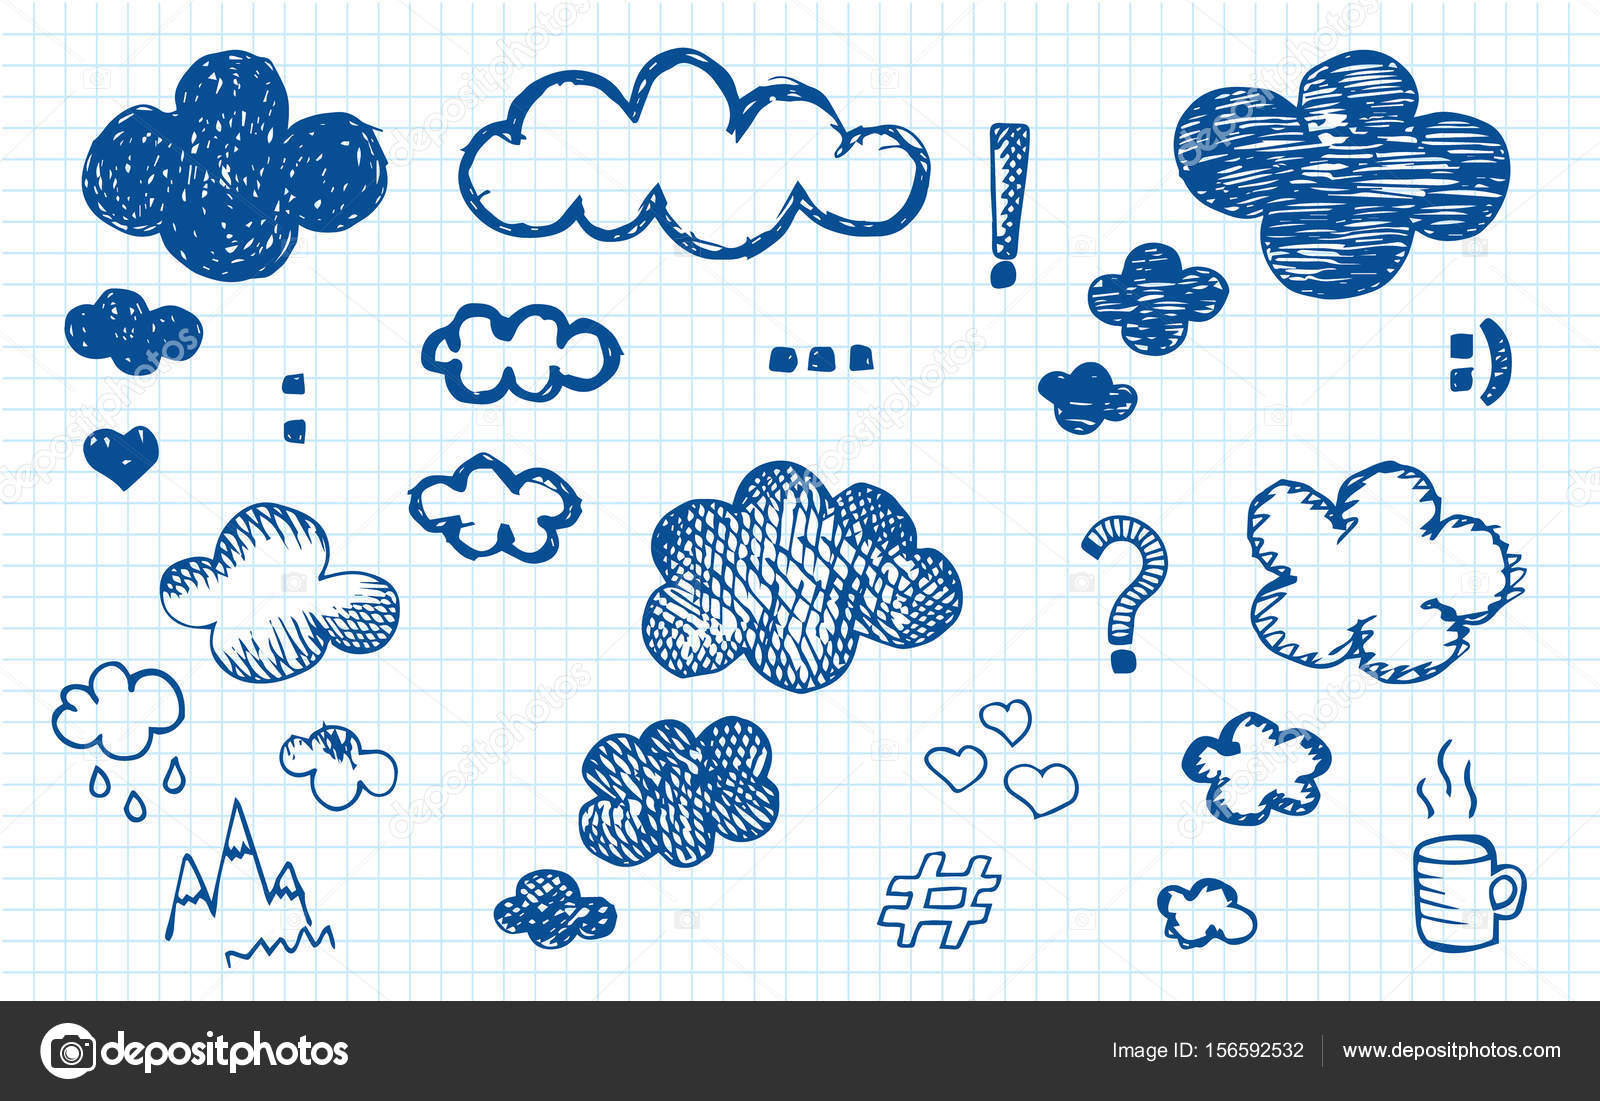 Pen Drawing Cloud Ideas On The Notebook Background Stock Vector